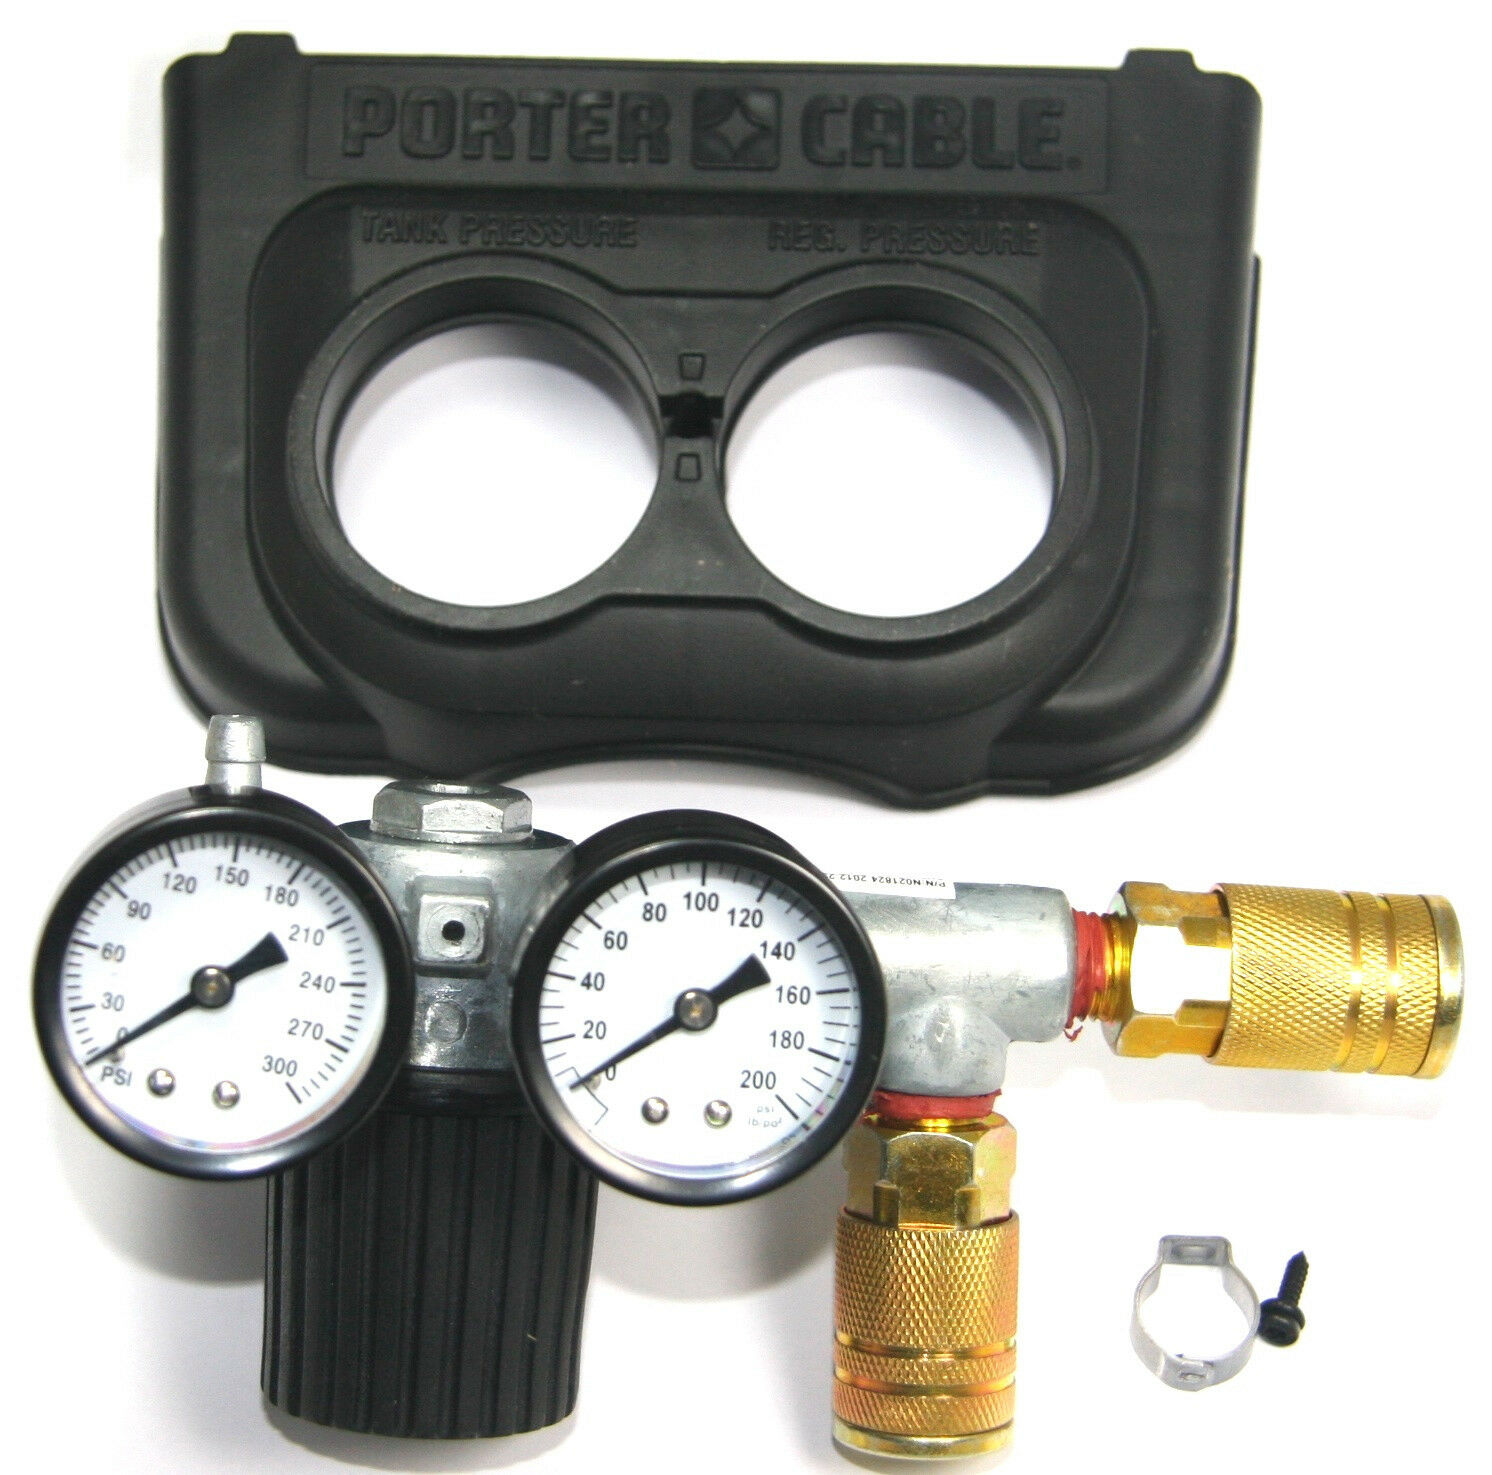 Porter cable air compressor manifold kit select